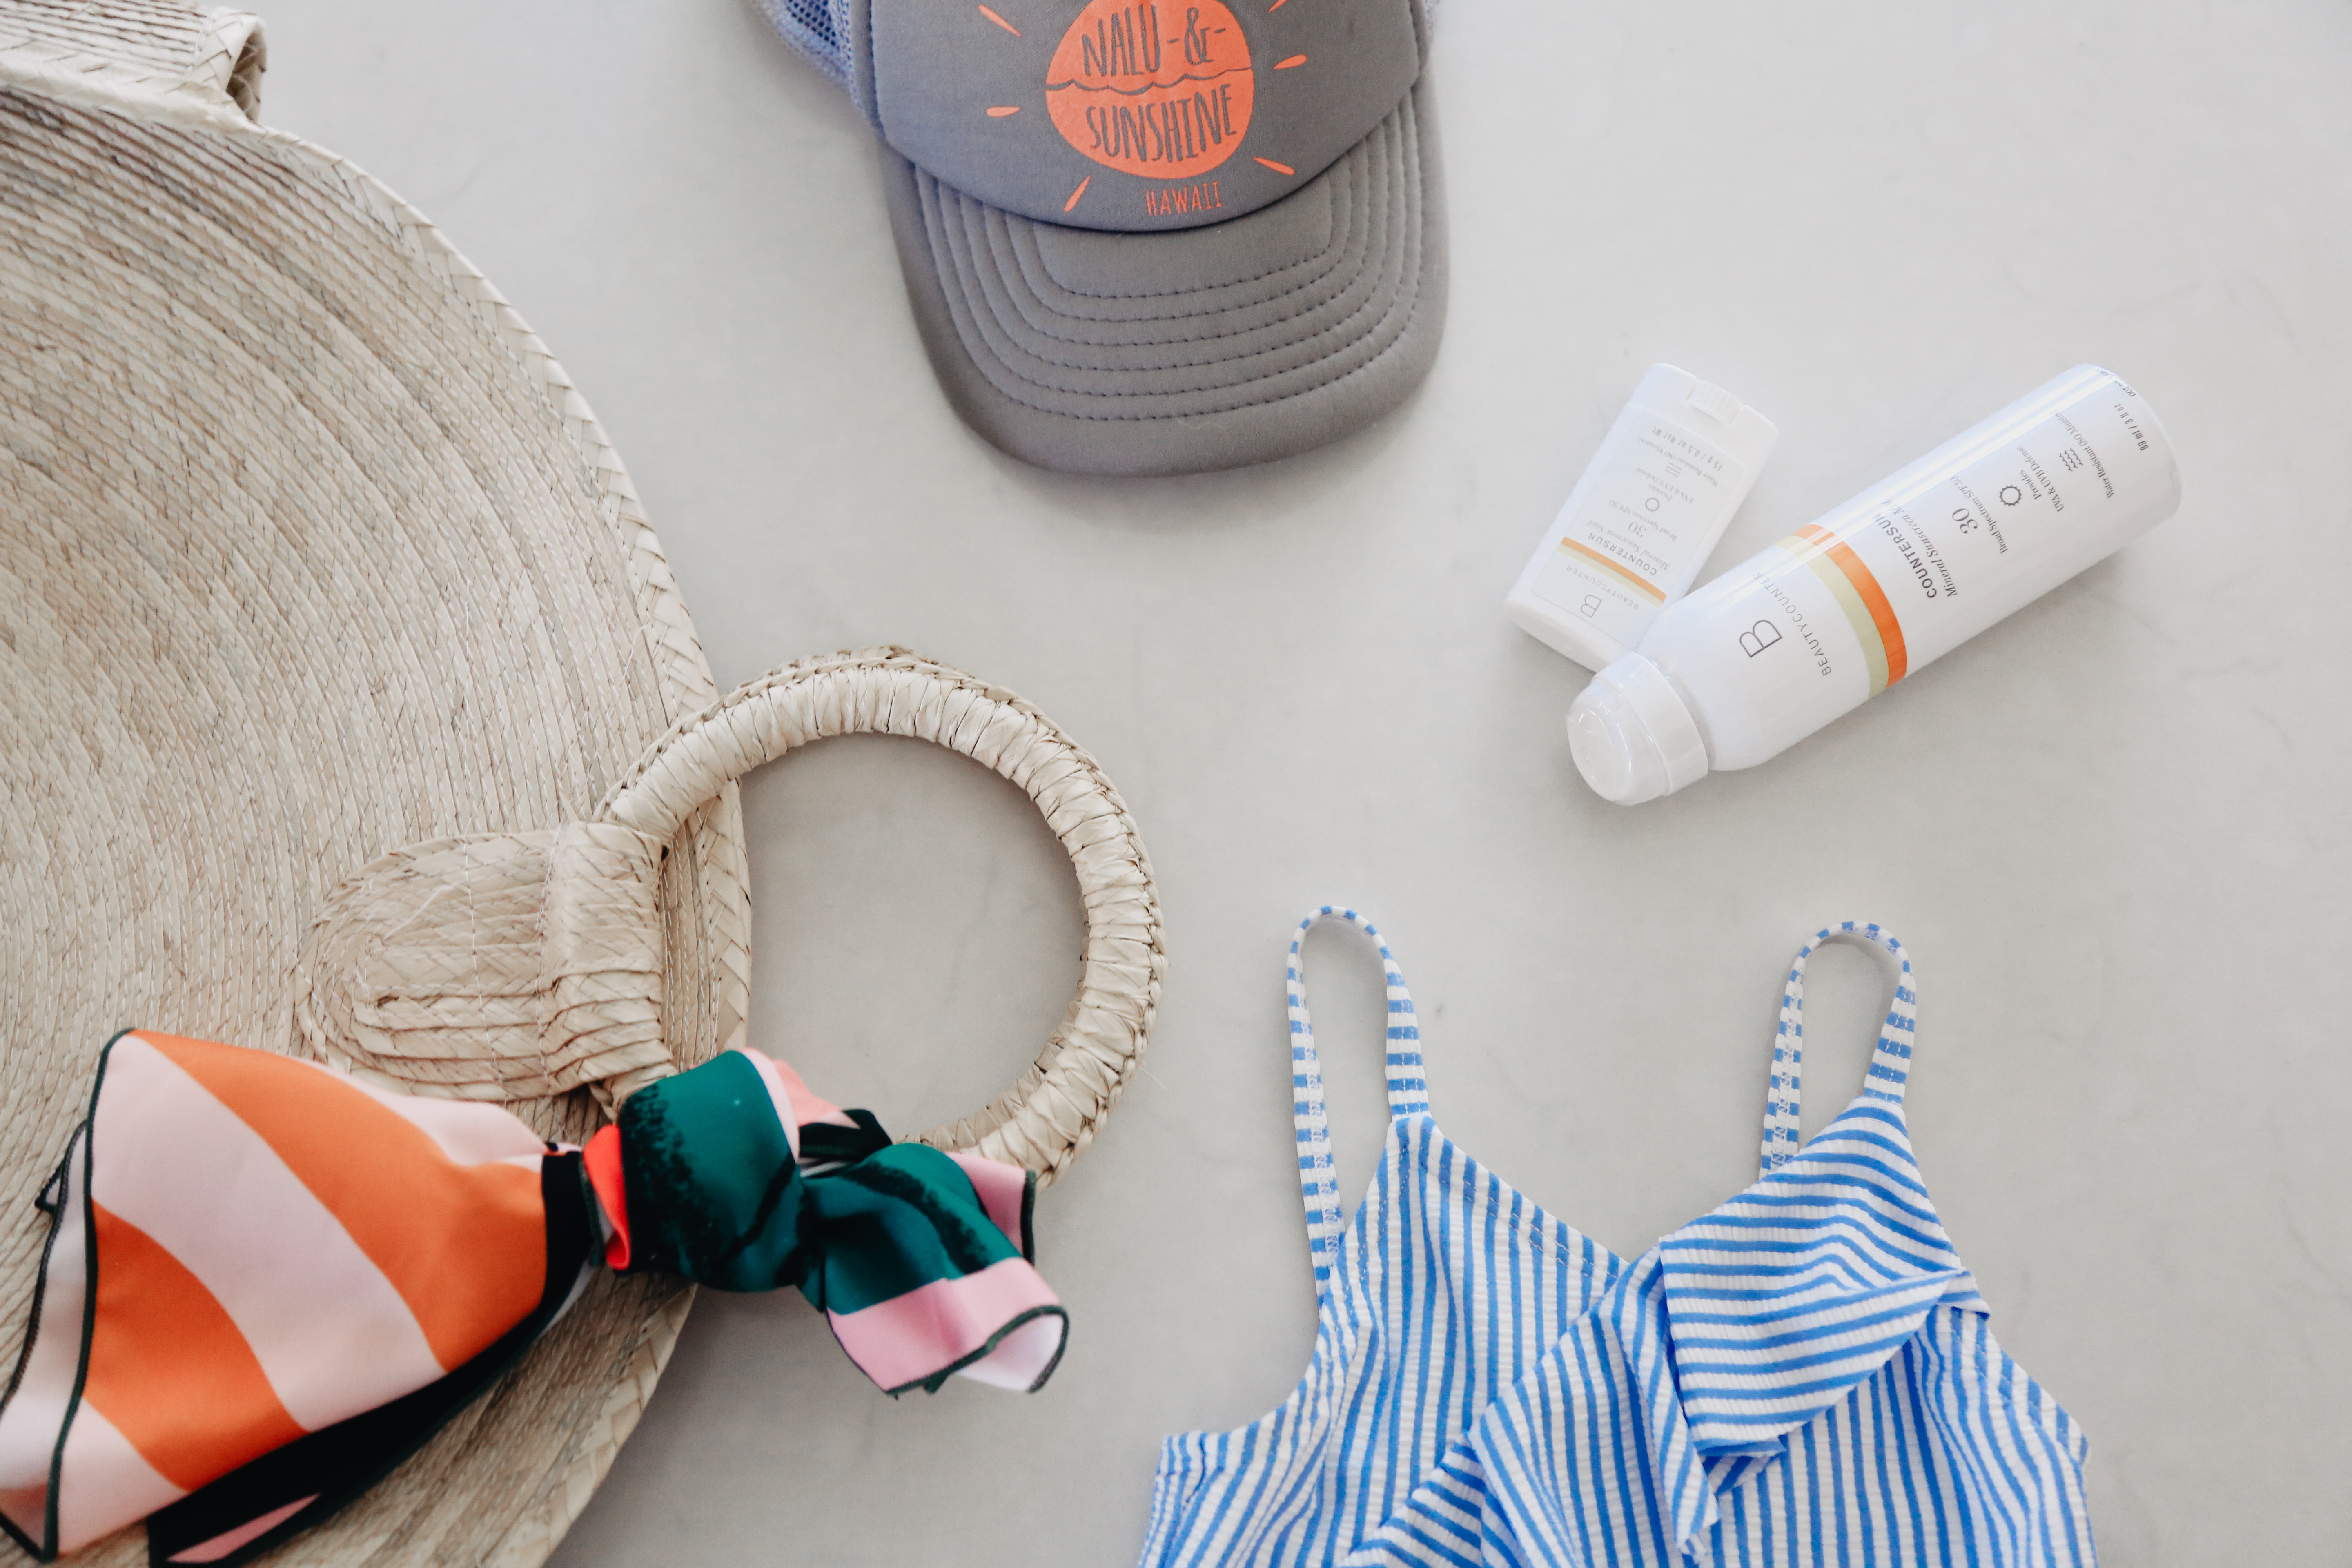 I Had No Idea That Life On Spectrum Is >> Why Is It Important To Use Safe Sunscreen